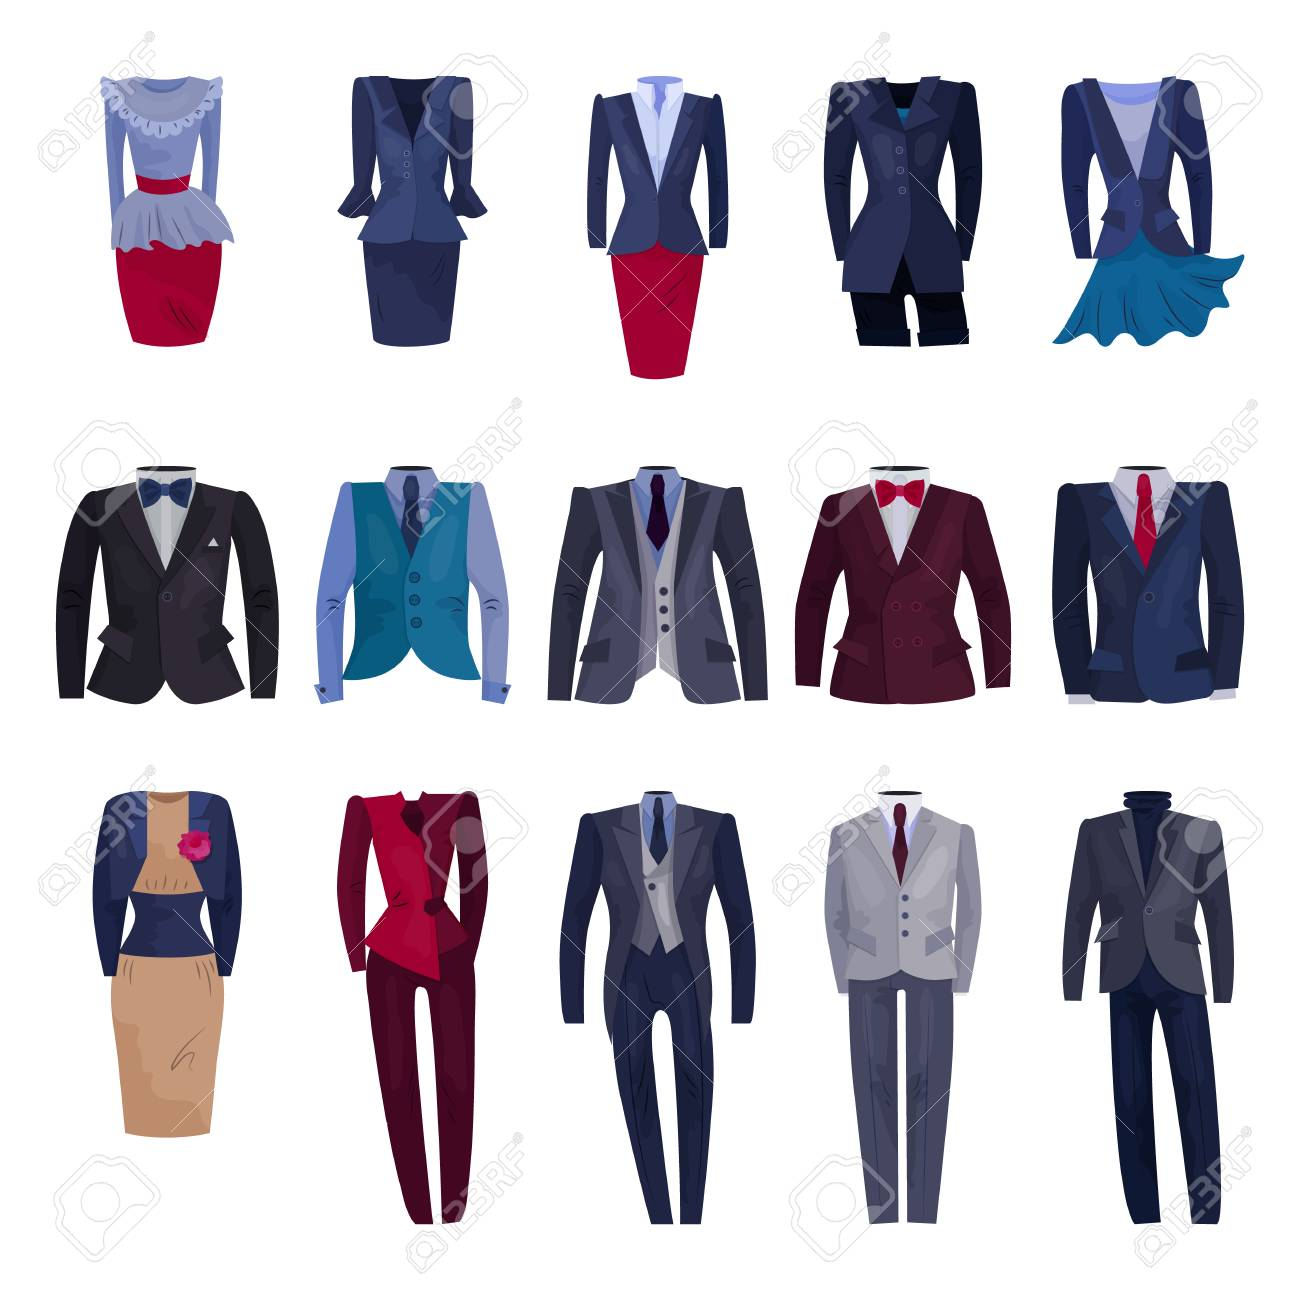 Business suit vector businessman or businesswoman corporate suited clothes illustration set of manager or worker dress code clothing at office isolated on white background. - 110023155